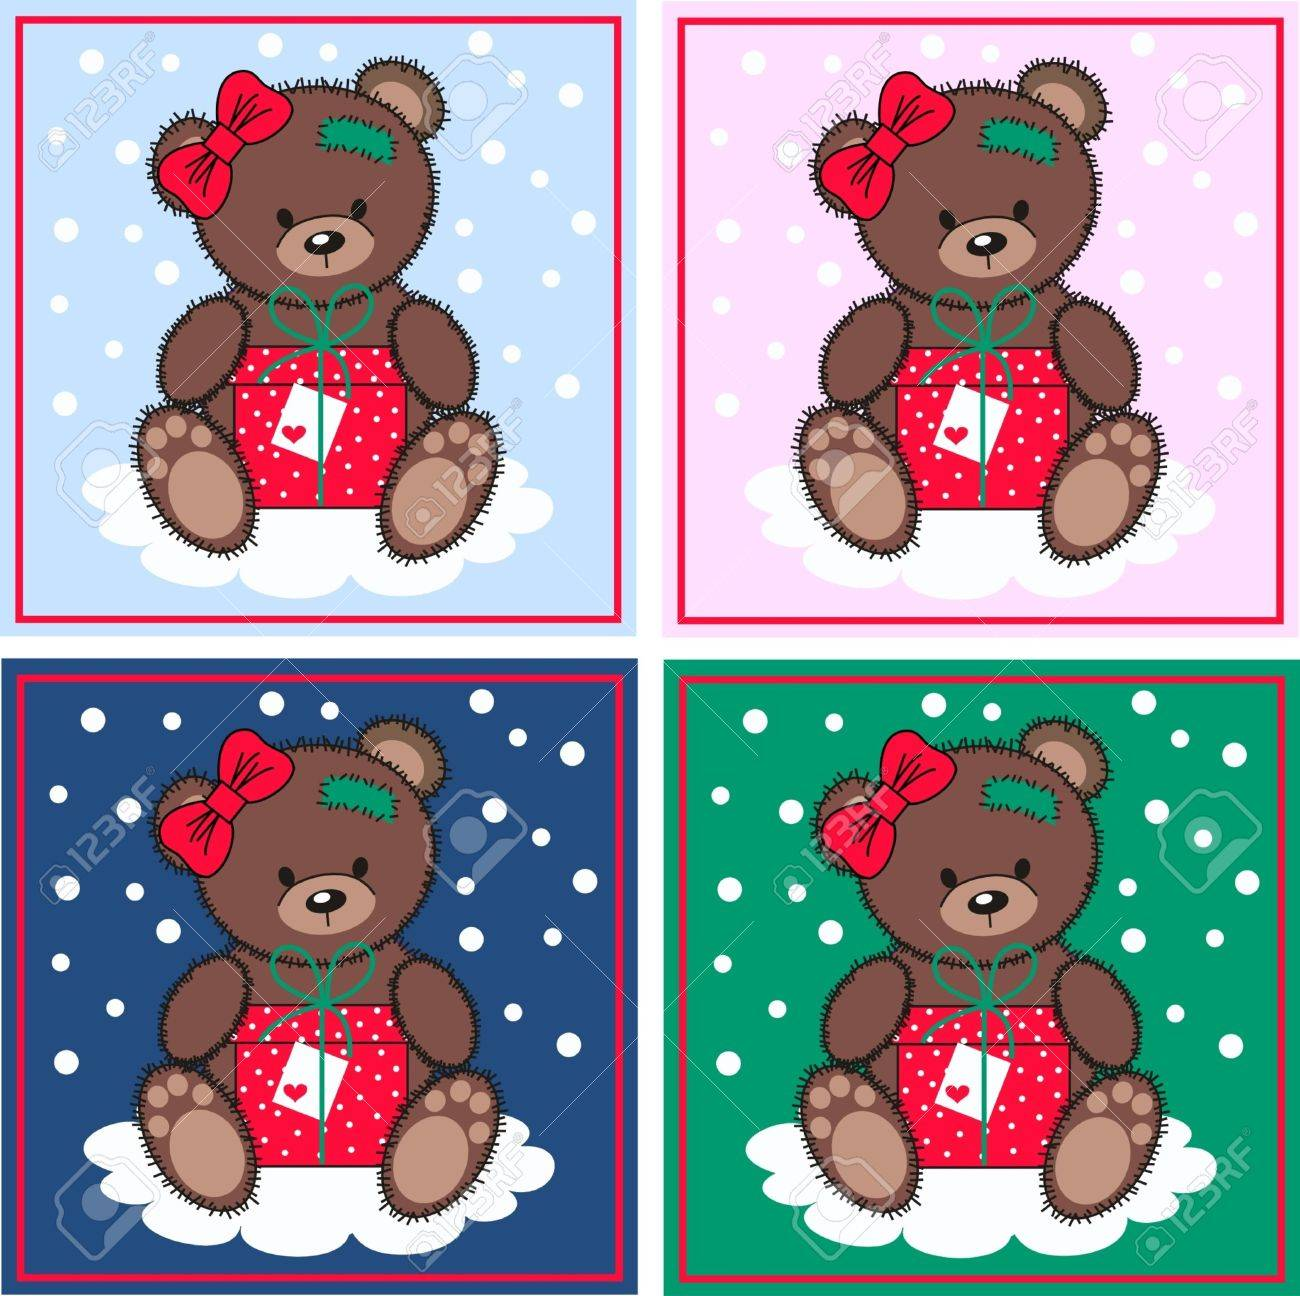 cute bears with a gift box Stock Vector - 11104807